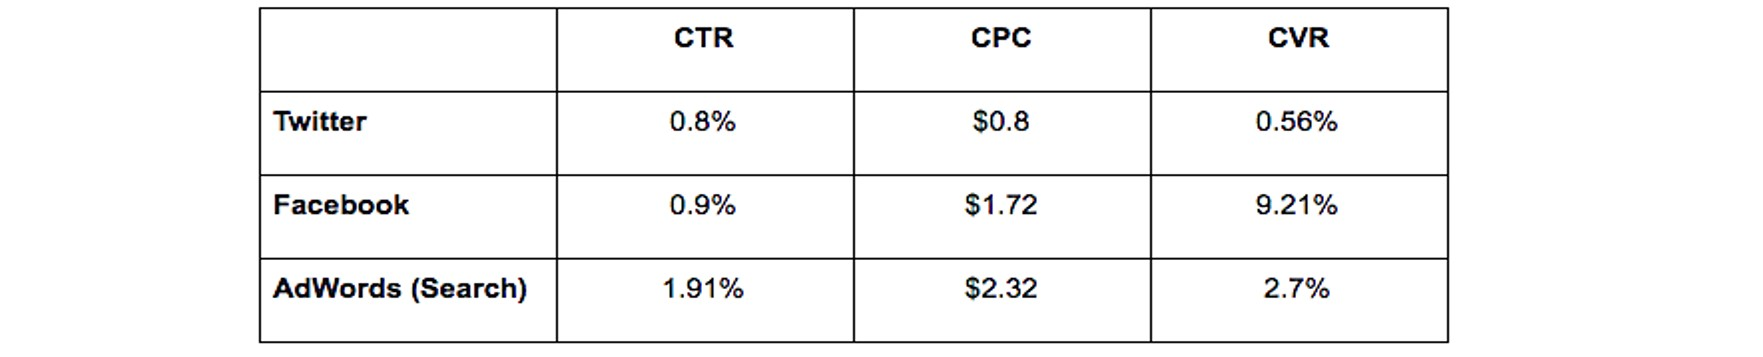 comparison table for conversions between Twitter, Facebook, and AdWords